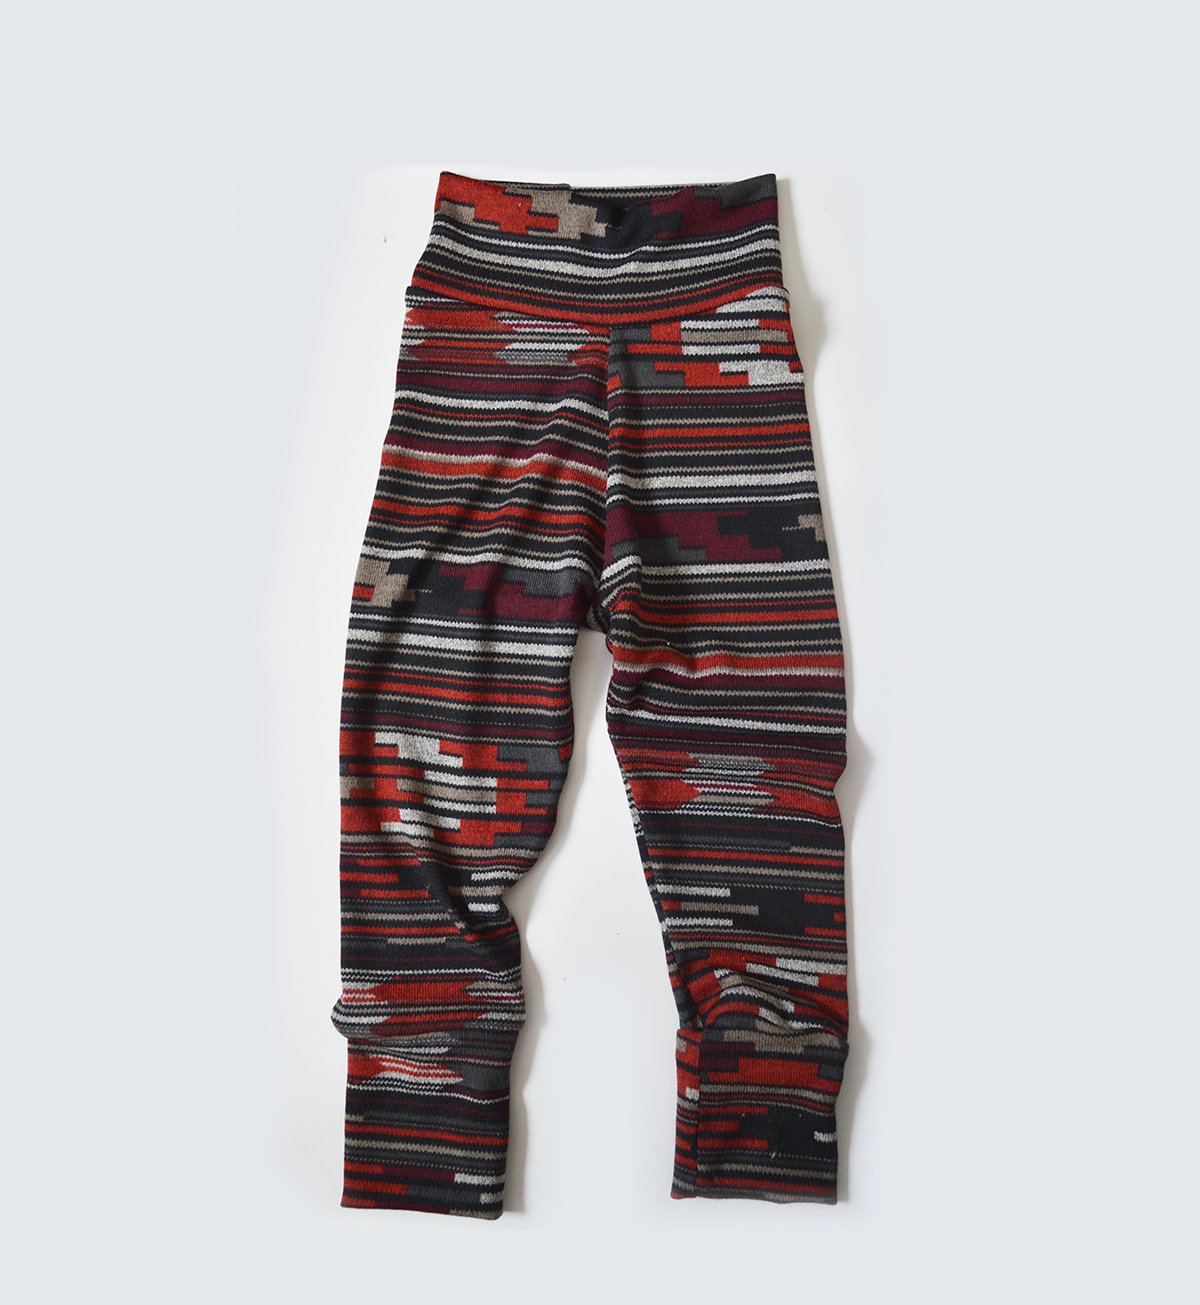 Little Sprout Pants™ Red Knit Tribal Abstract - Slim Fit 00455